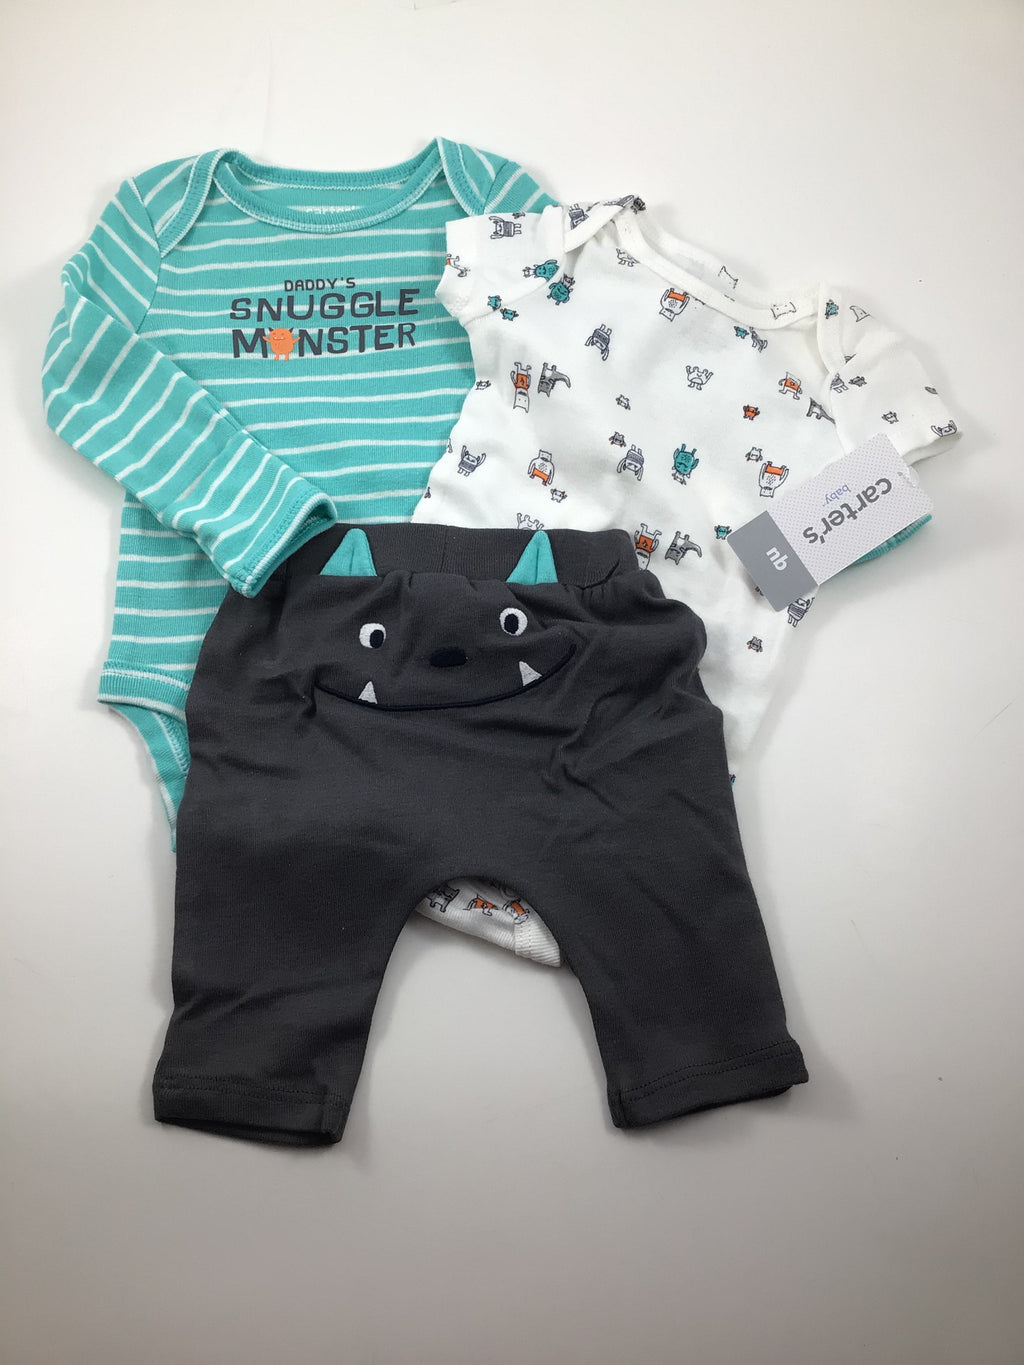 Boy's Long Sleeve Outfit - Size Newborn